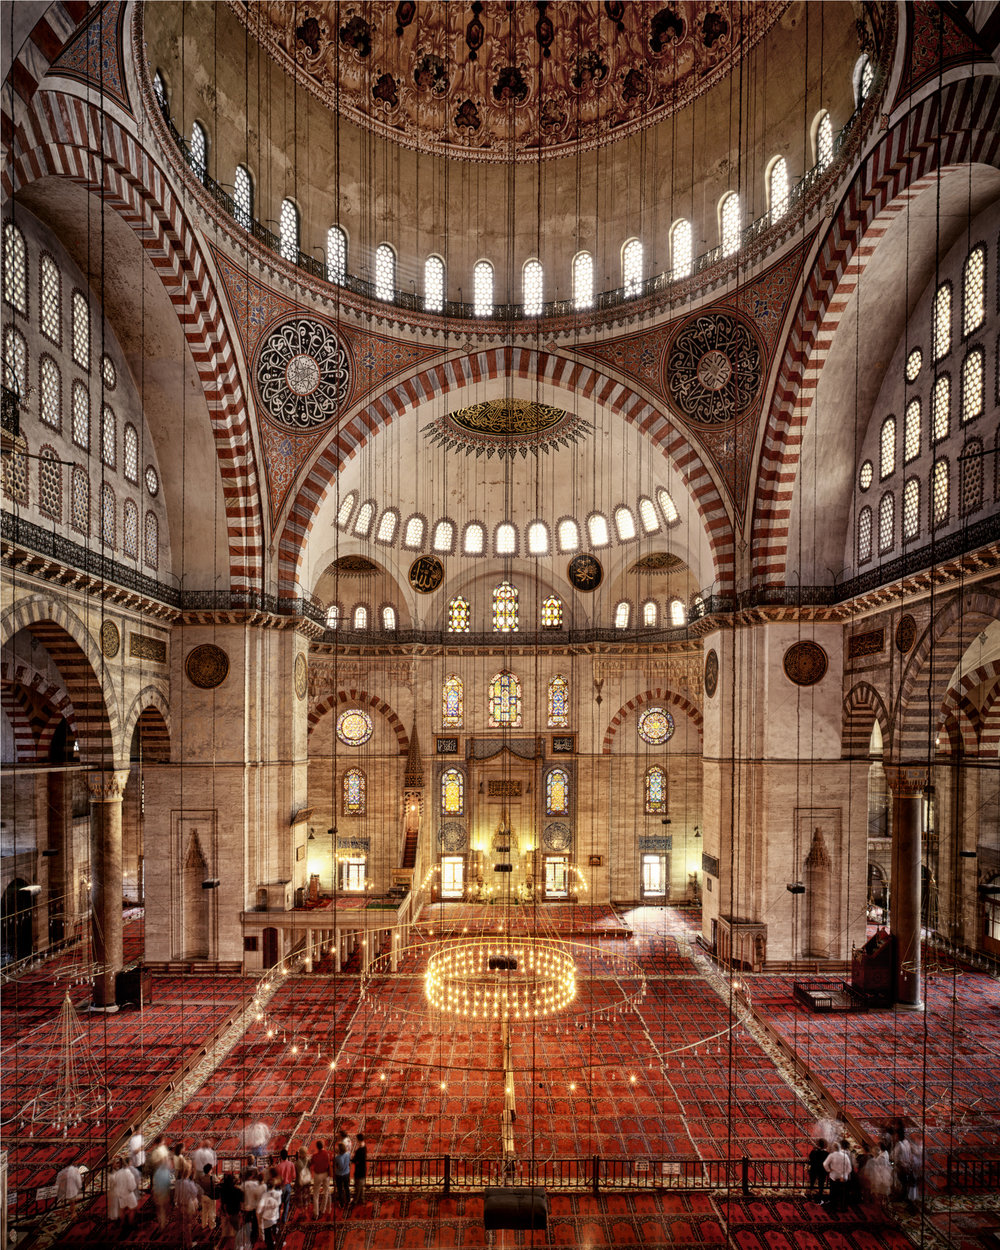 Mosque - Instanbul, Turkey 1999